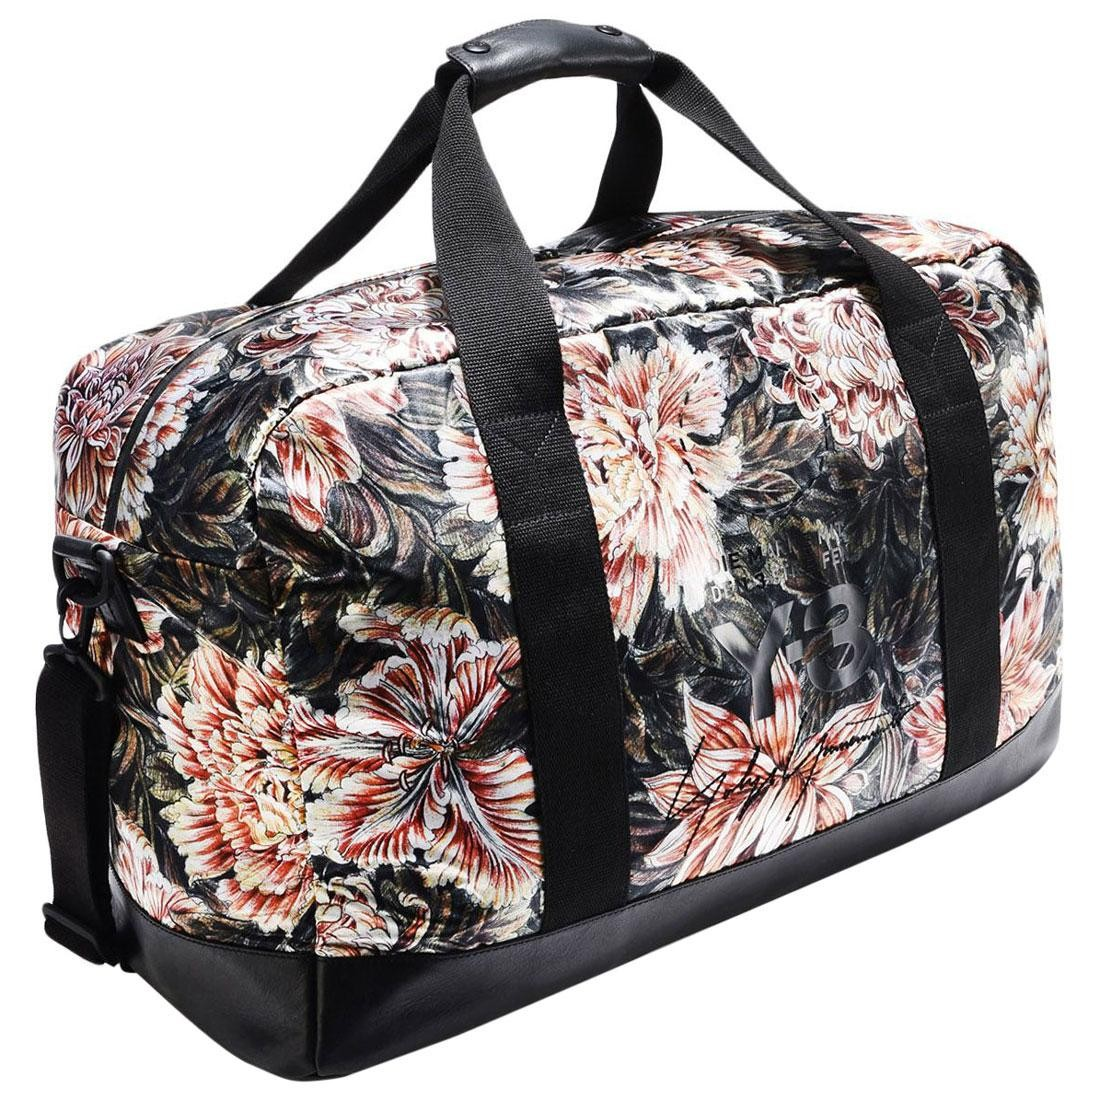 Adidas Y-3 Allover Print Weekender Bag (multi / aop apogee)